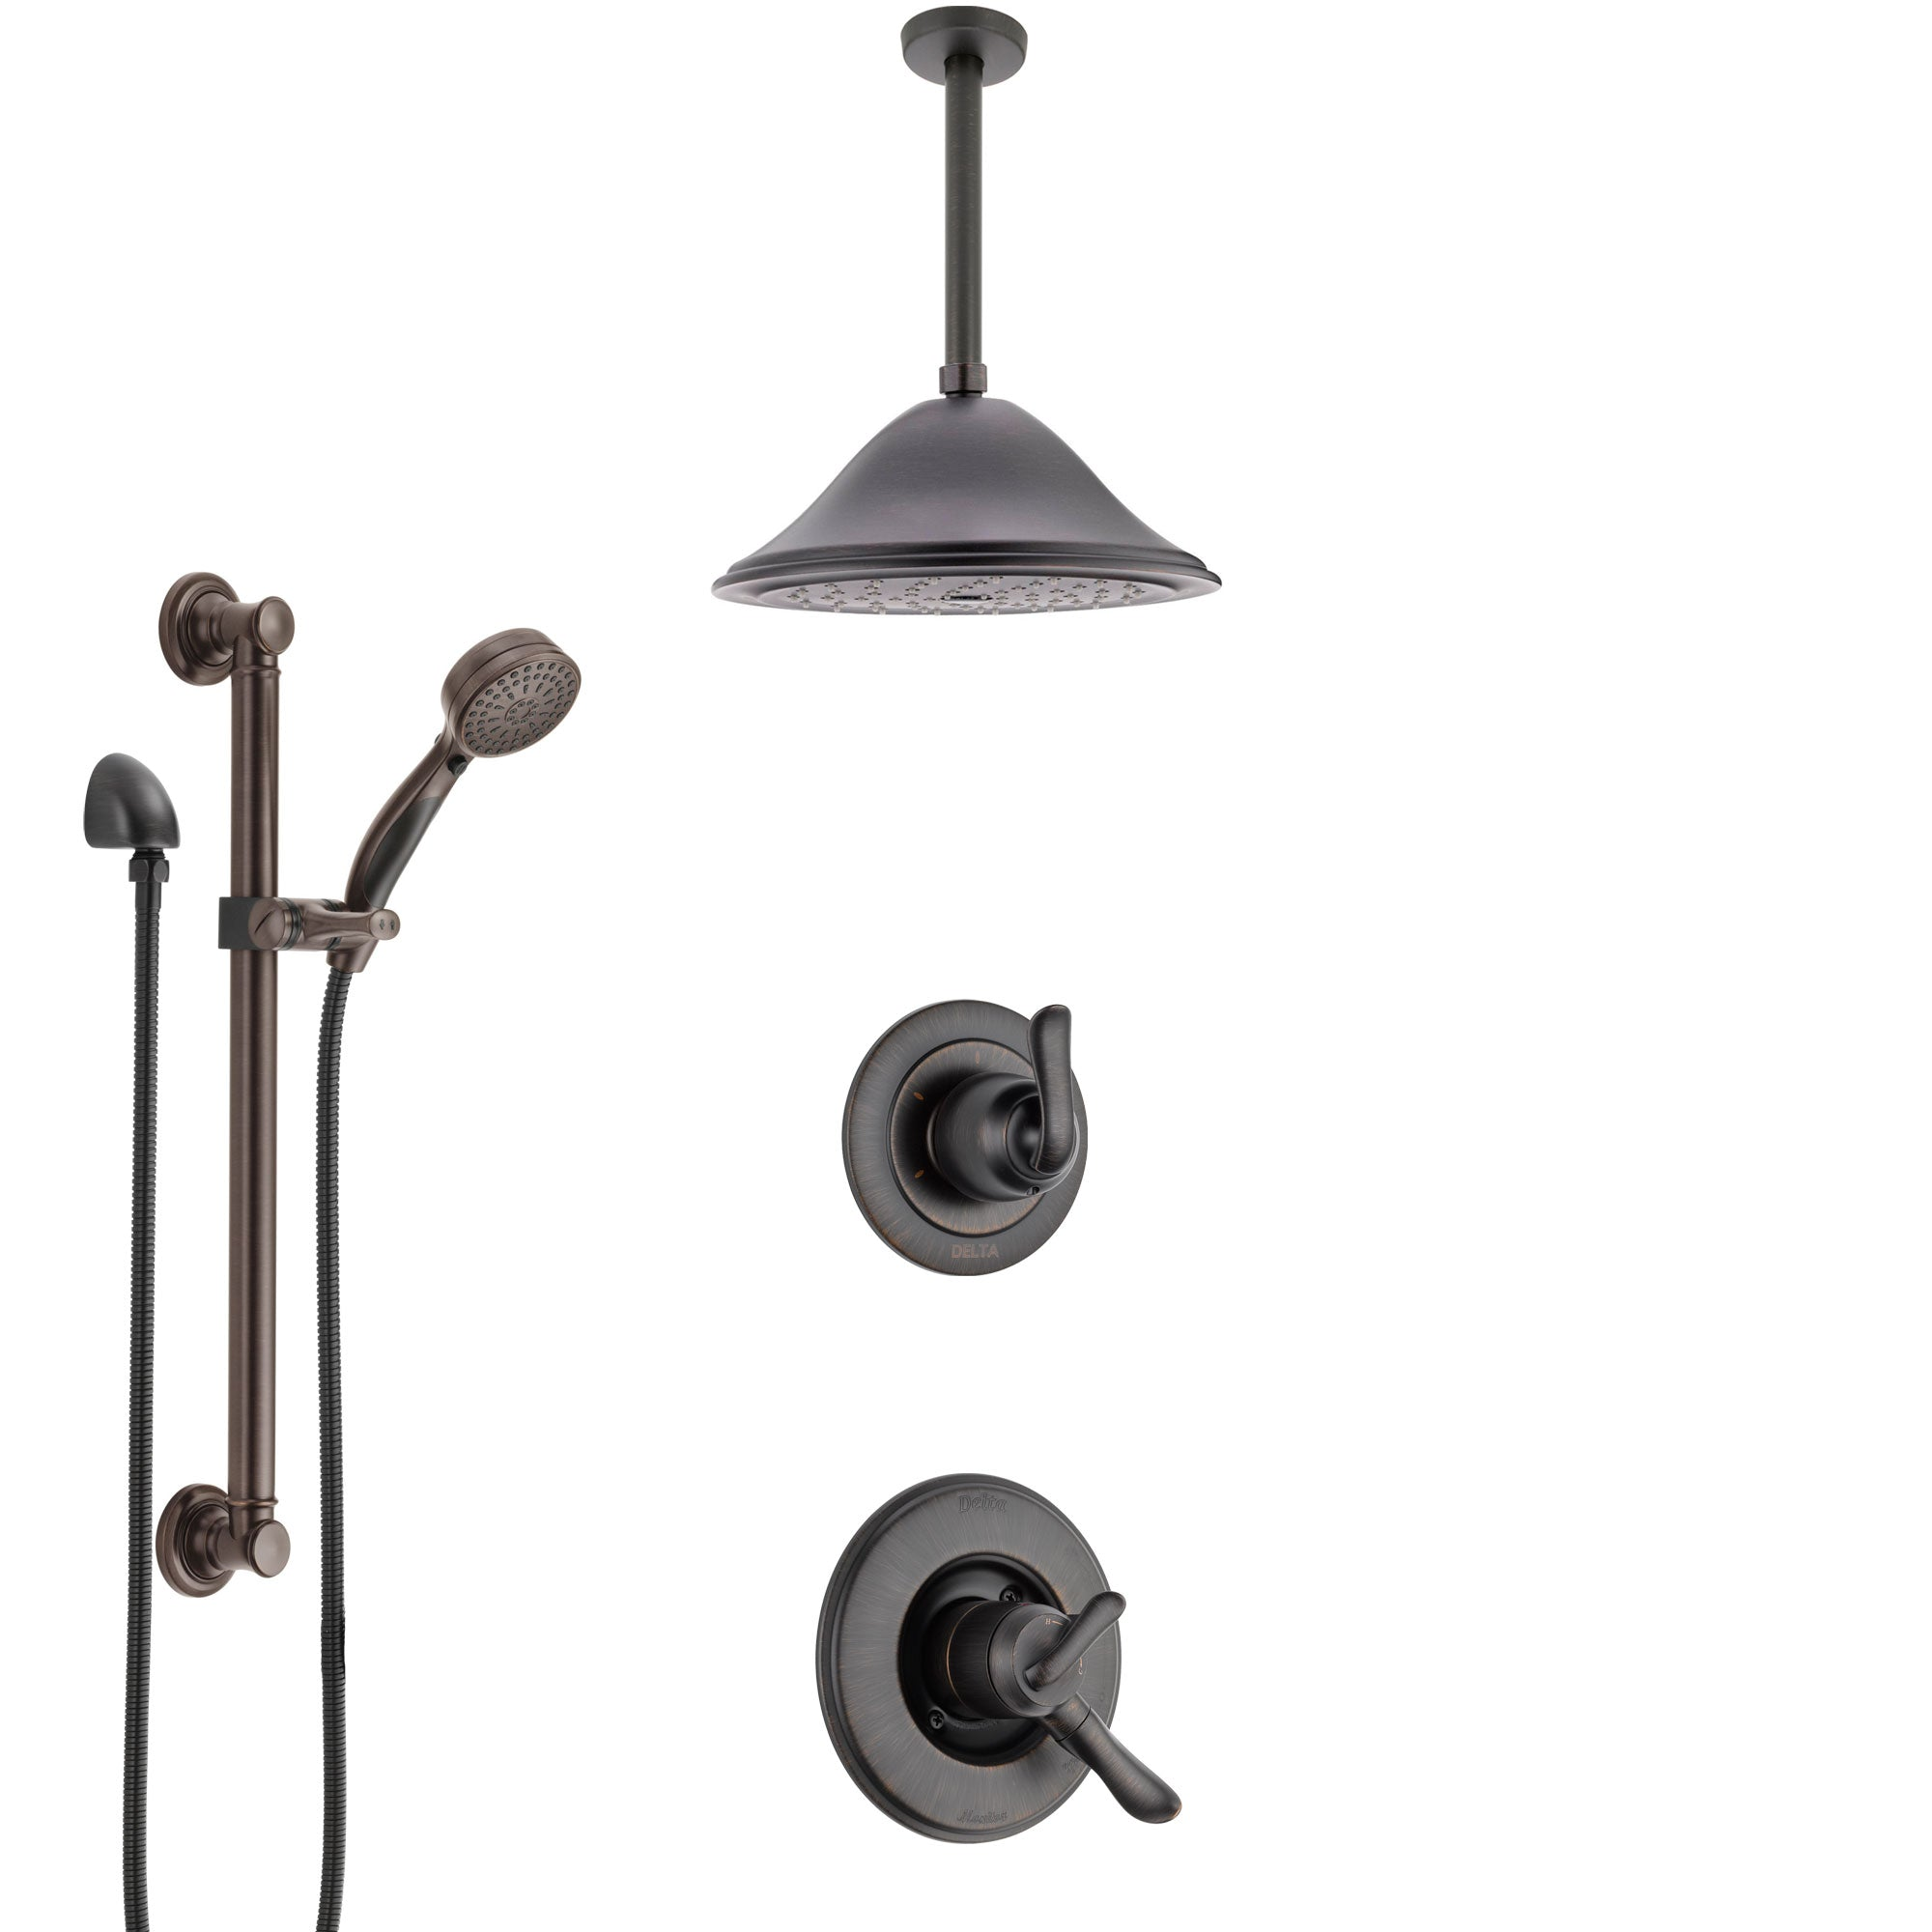 Delta Linden Venetian Bronze Shower System with Dual Control Handle, Diverter, Ceiling Mount Showerhead, and Hand Shower with Grab Bar SS1794RB5